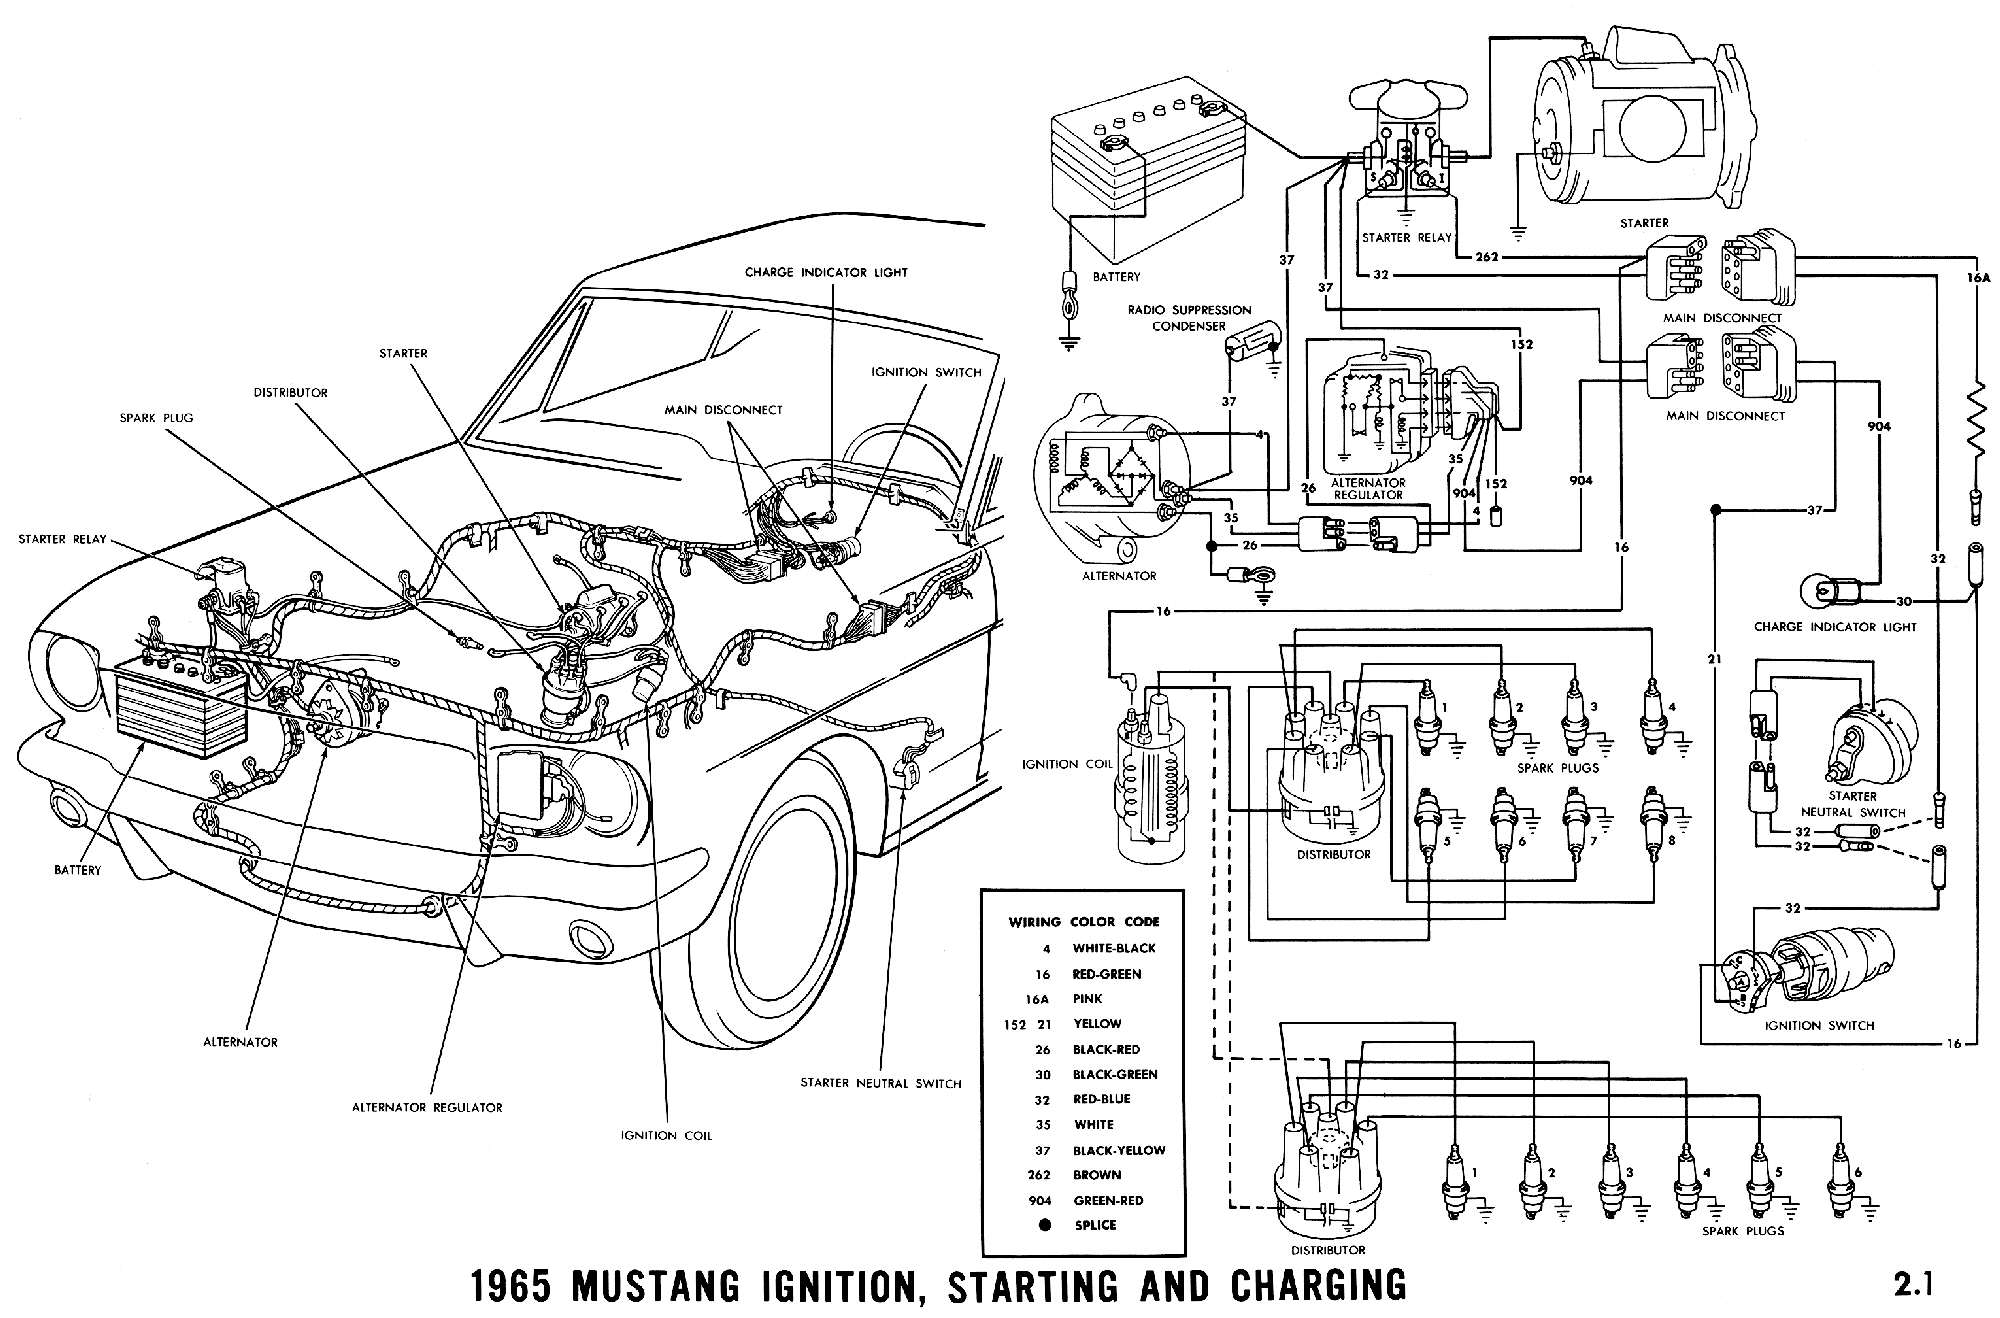 1965c 1965 mustang wiring diagrams average joe restoration 1965 Mustang Restoration Guide at n-0.co